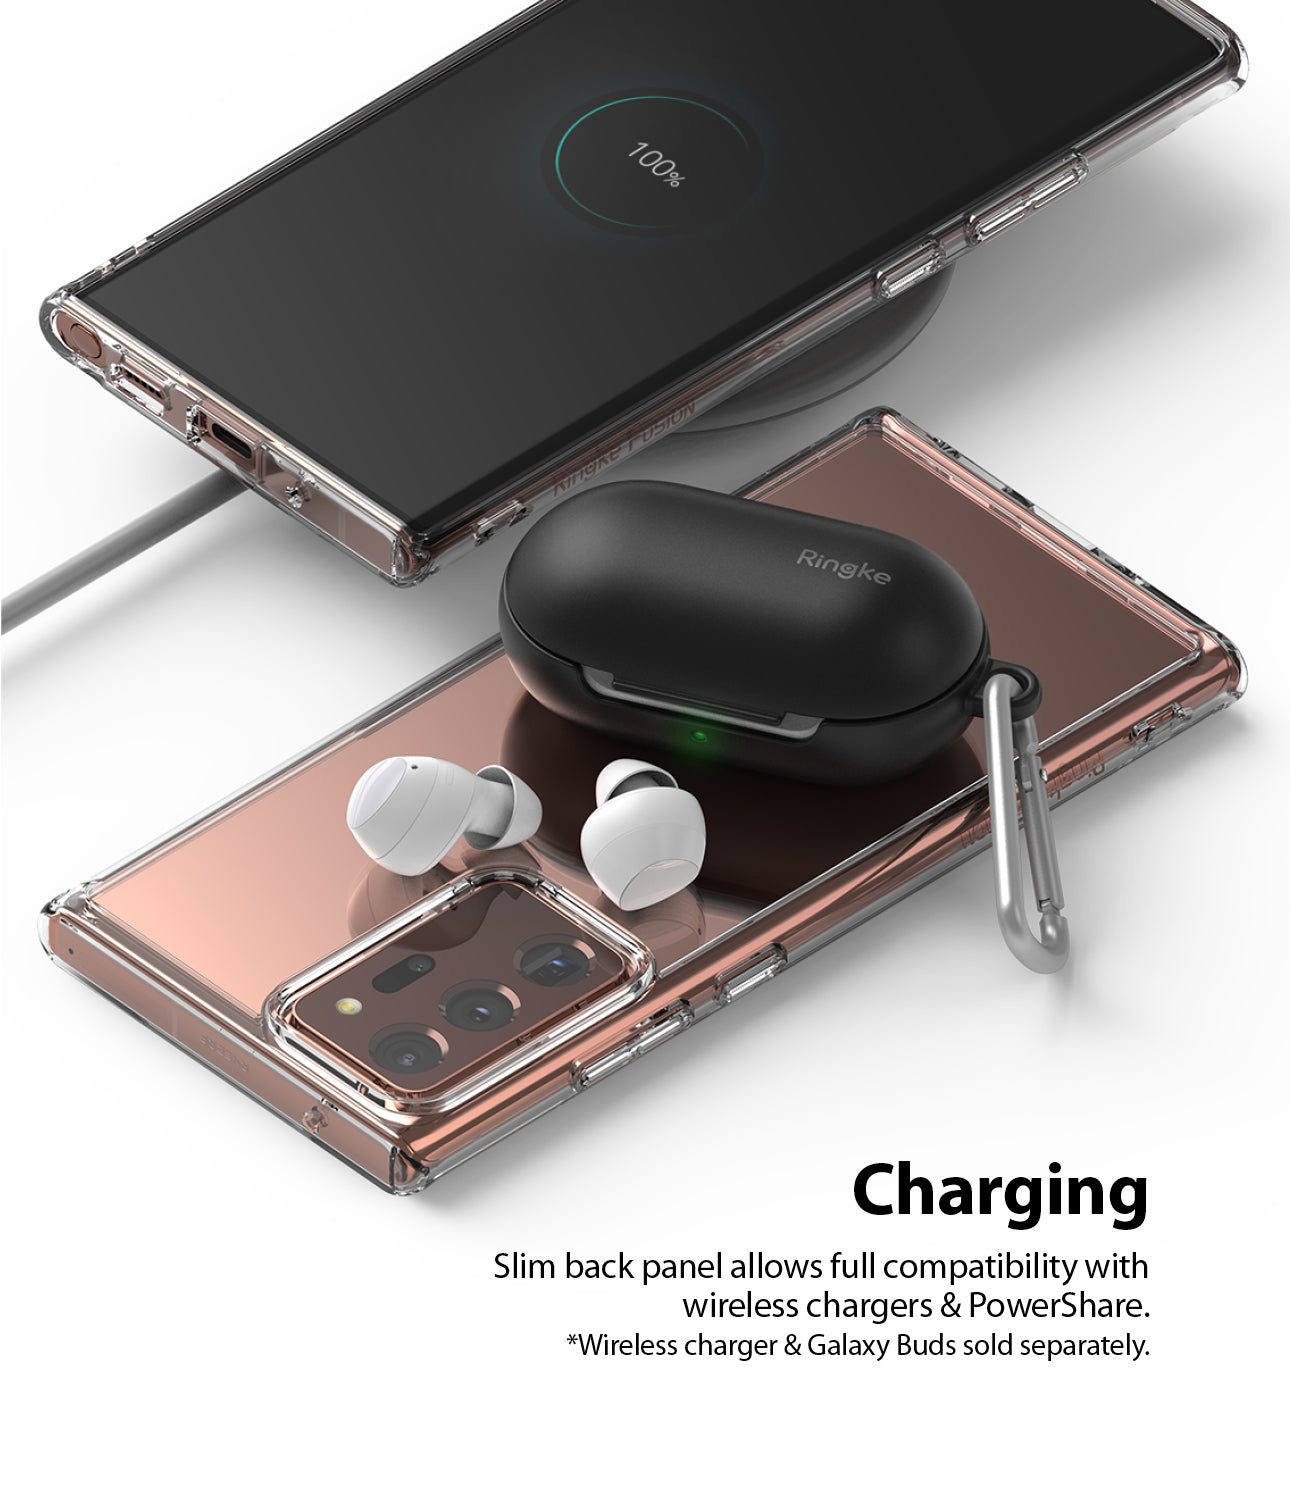 slim back panel allows full compatibility with wireless charger & powershare